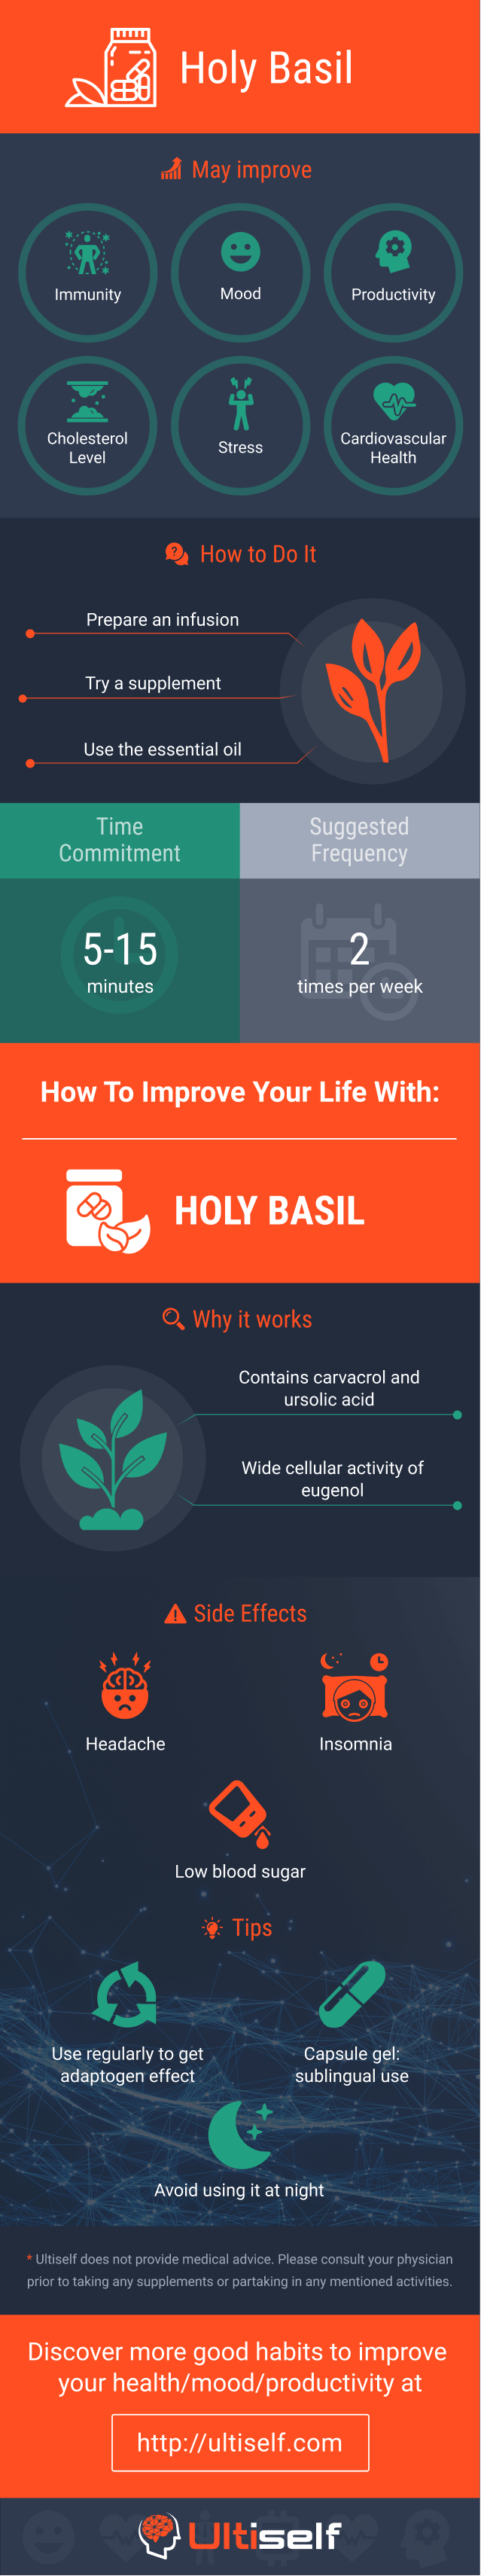 Holy Basil infographic